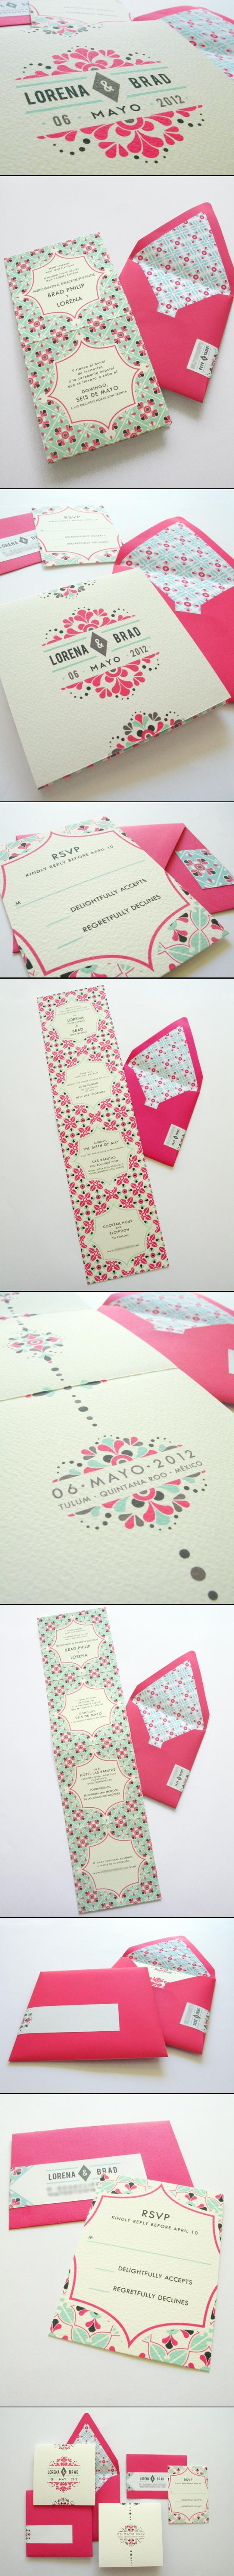 Mexican tile motifs adorn this variation of the Mexican tile-inspired Invitation, now with bright pops of fuchsia and turquoise to compliment the Riviera Maya beach venue.